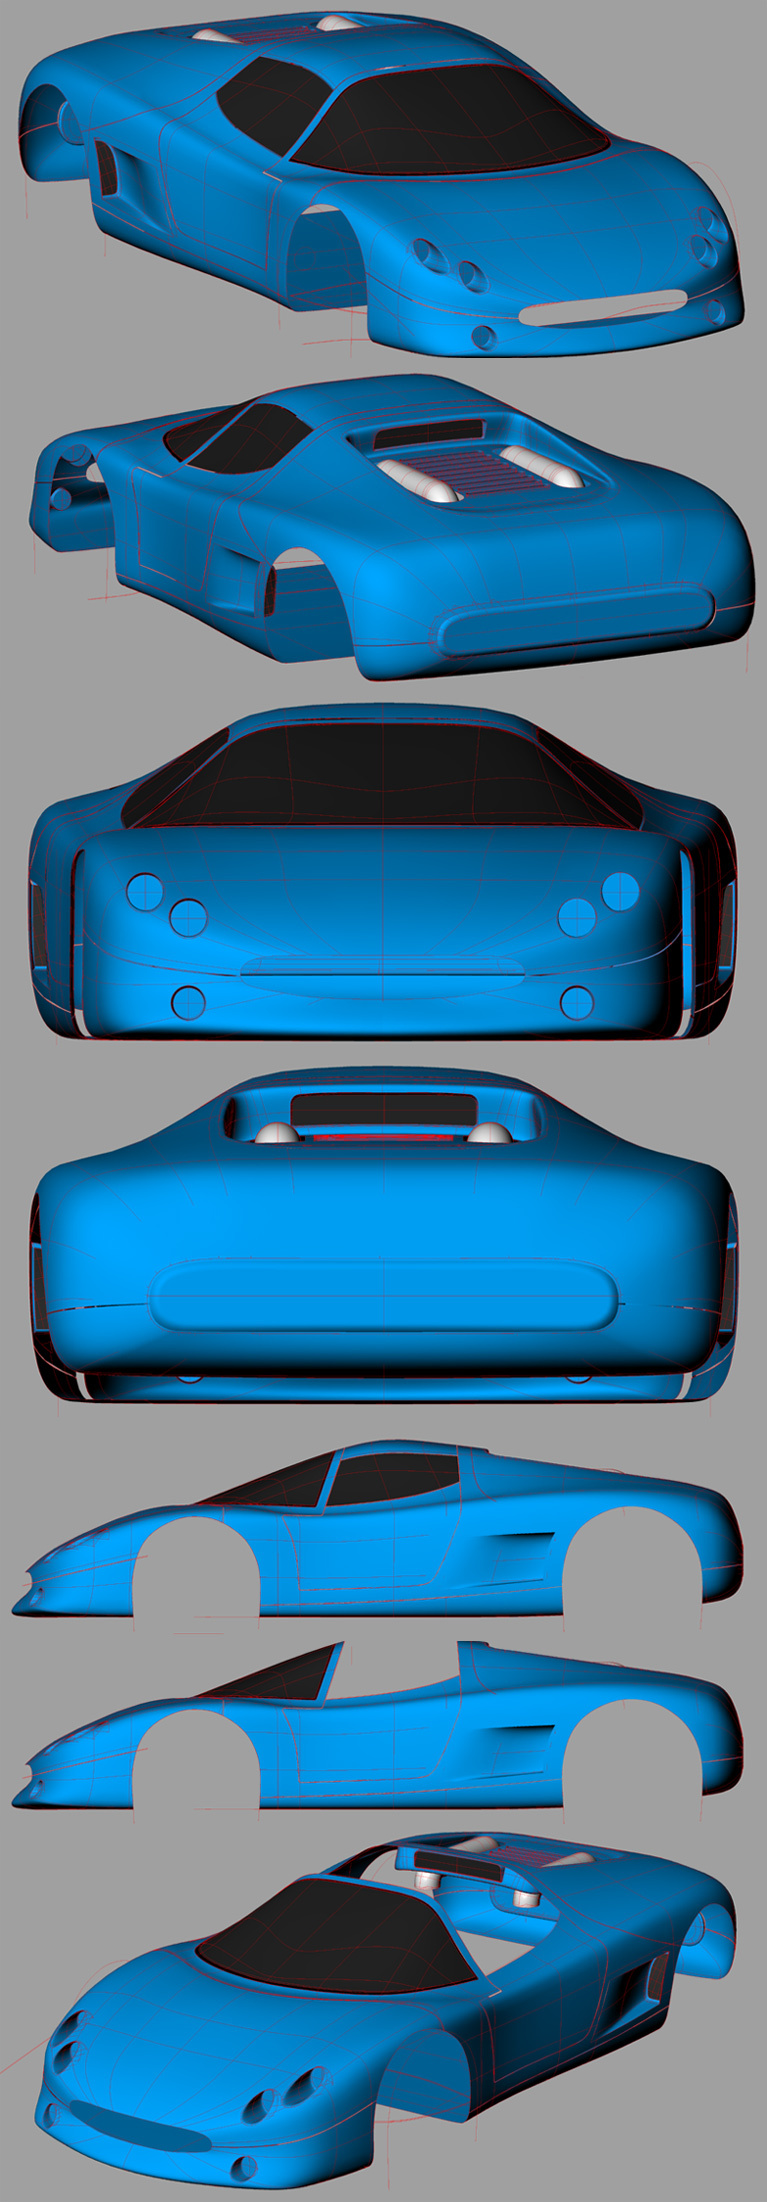 WIP - KAOM V02 Concept Car - Wireframes by kaom